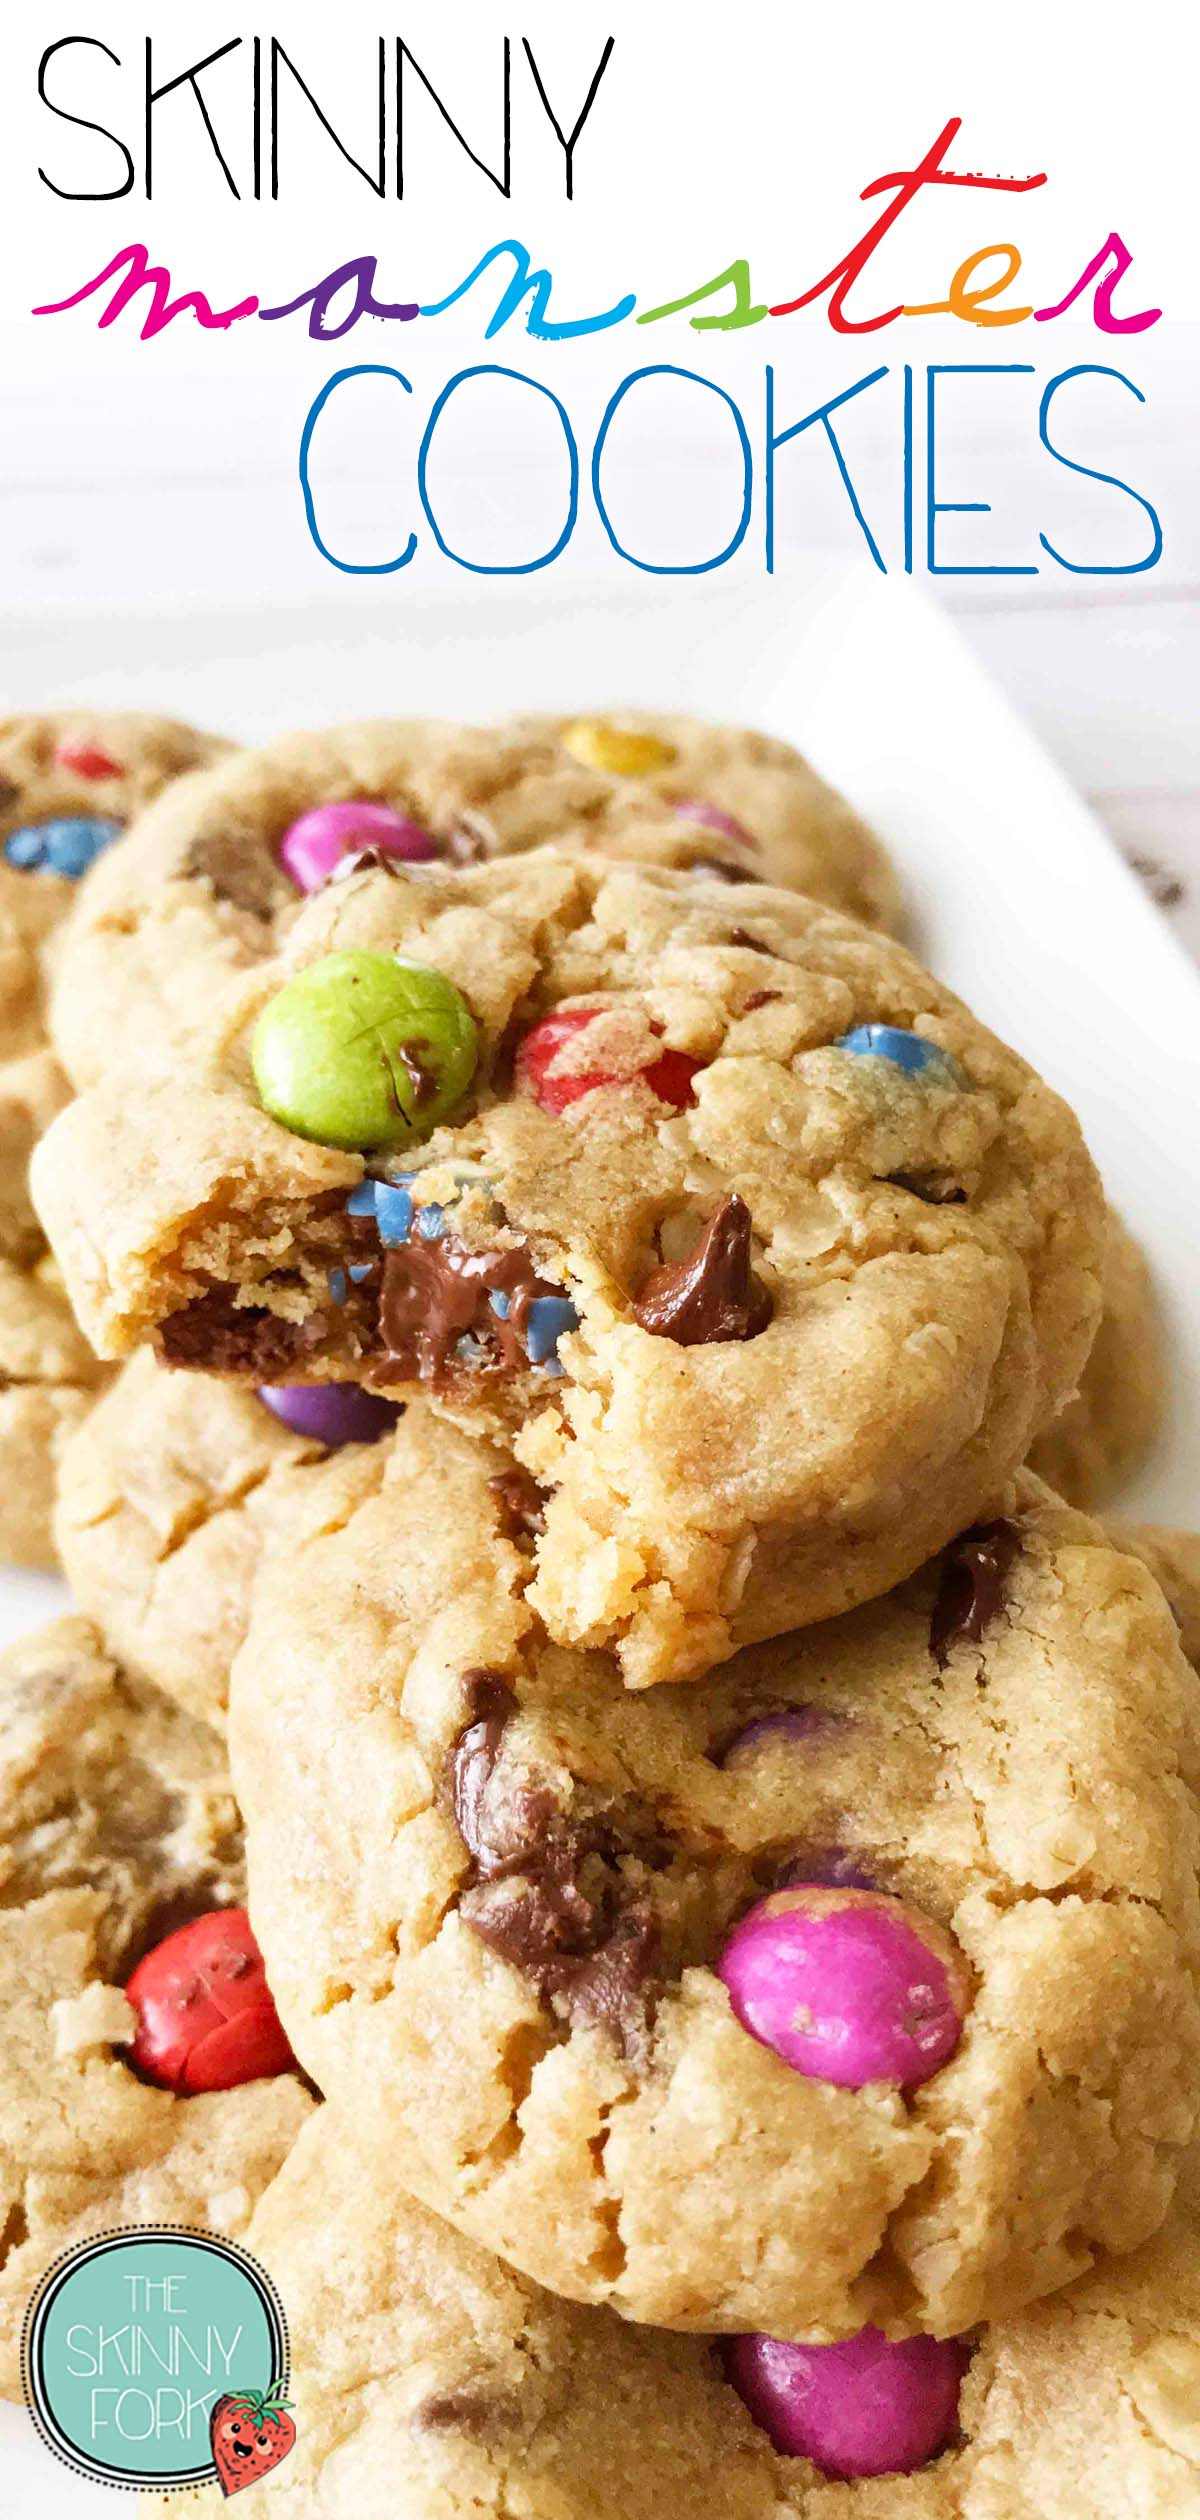 Skinny Monster Cookies